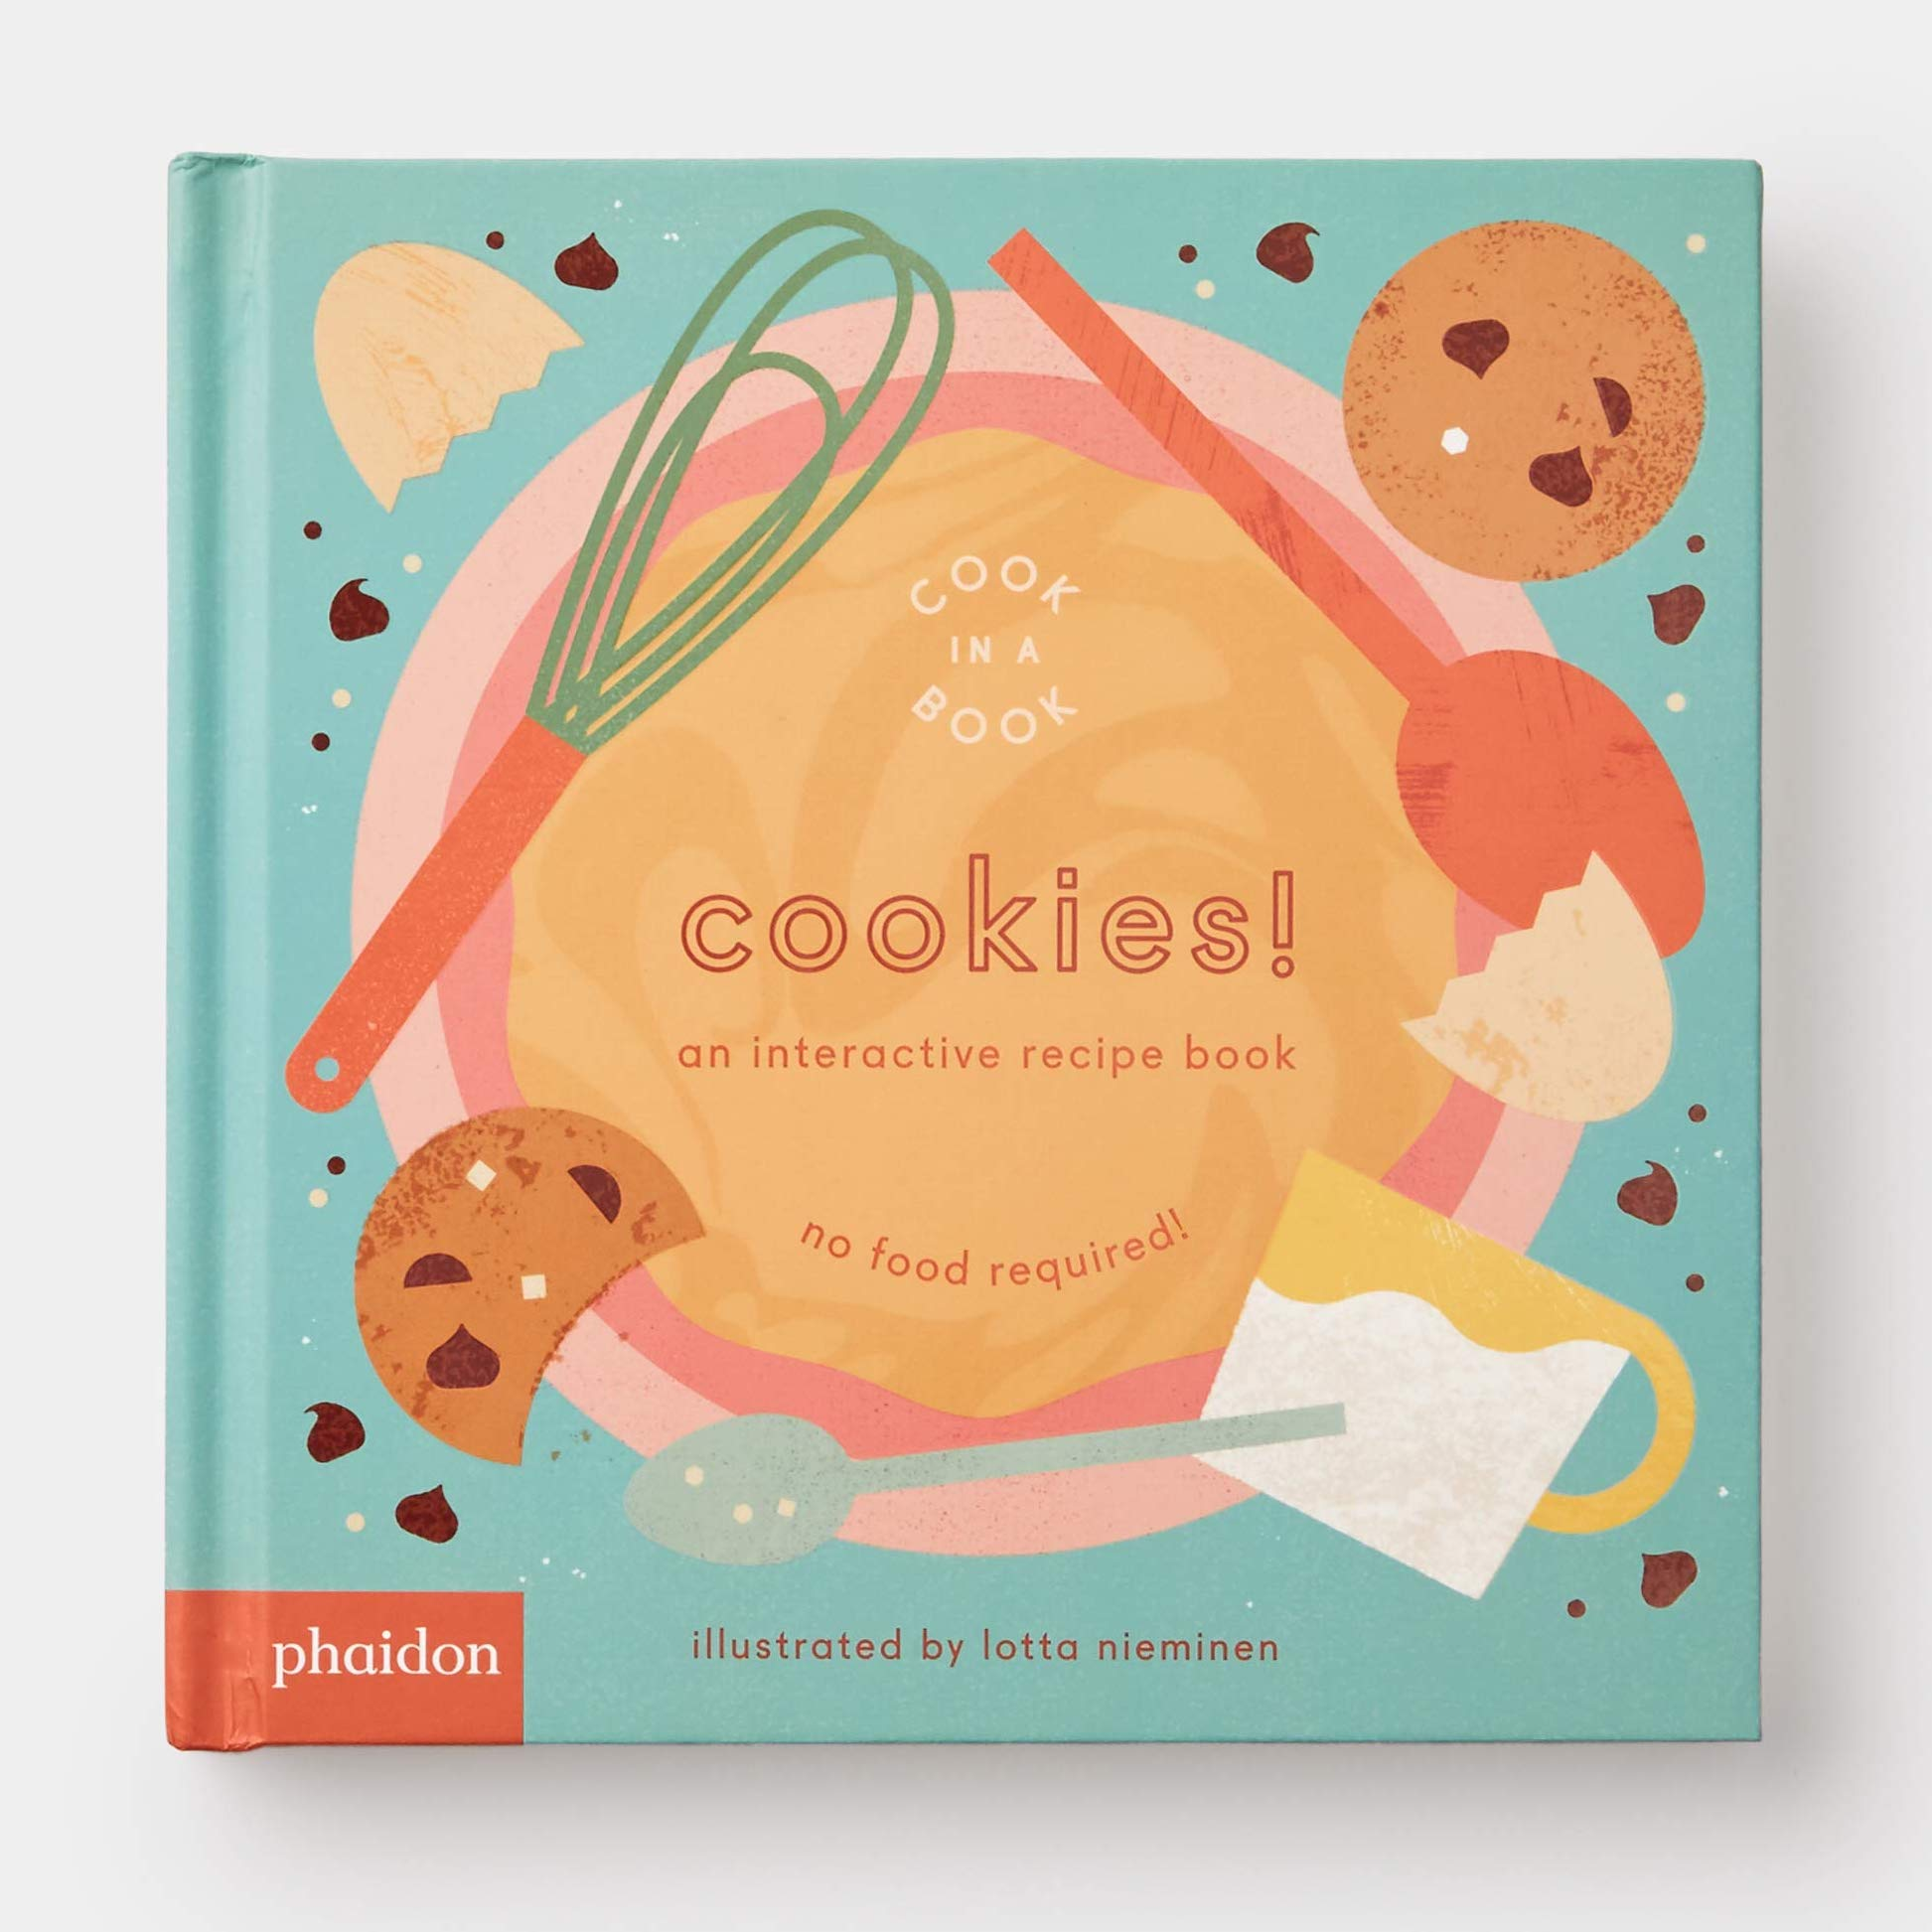 Cookies! book featuring baking illustrations on the cover